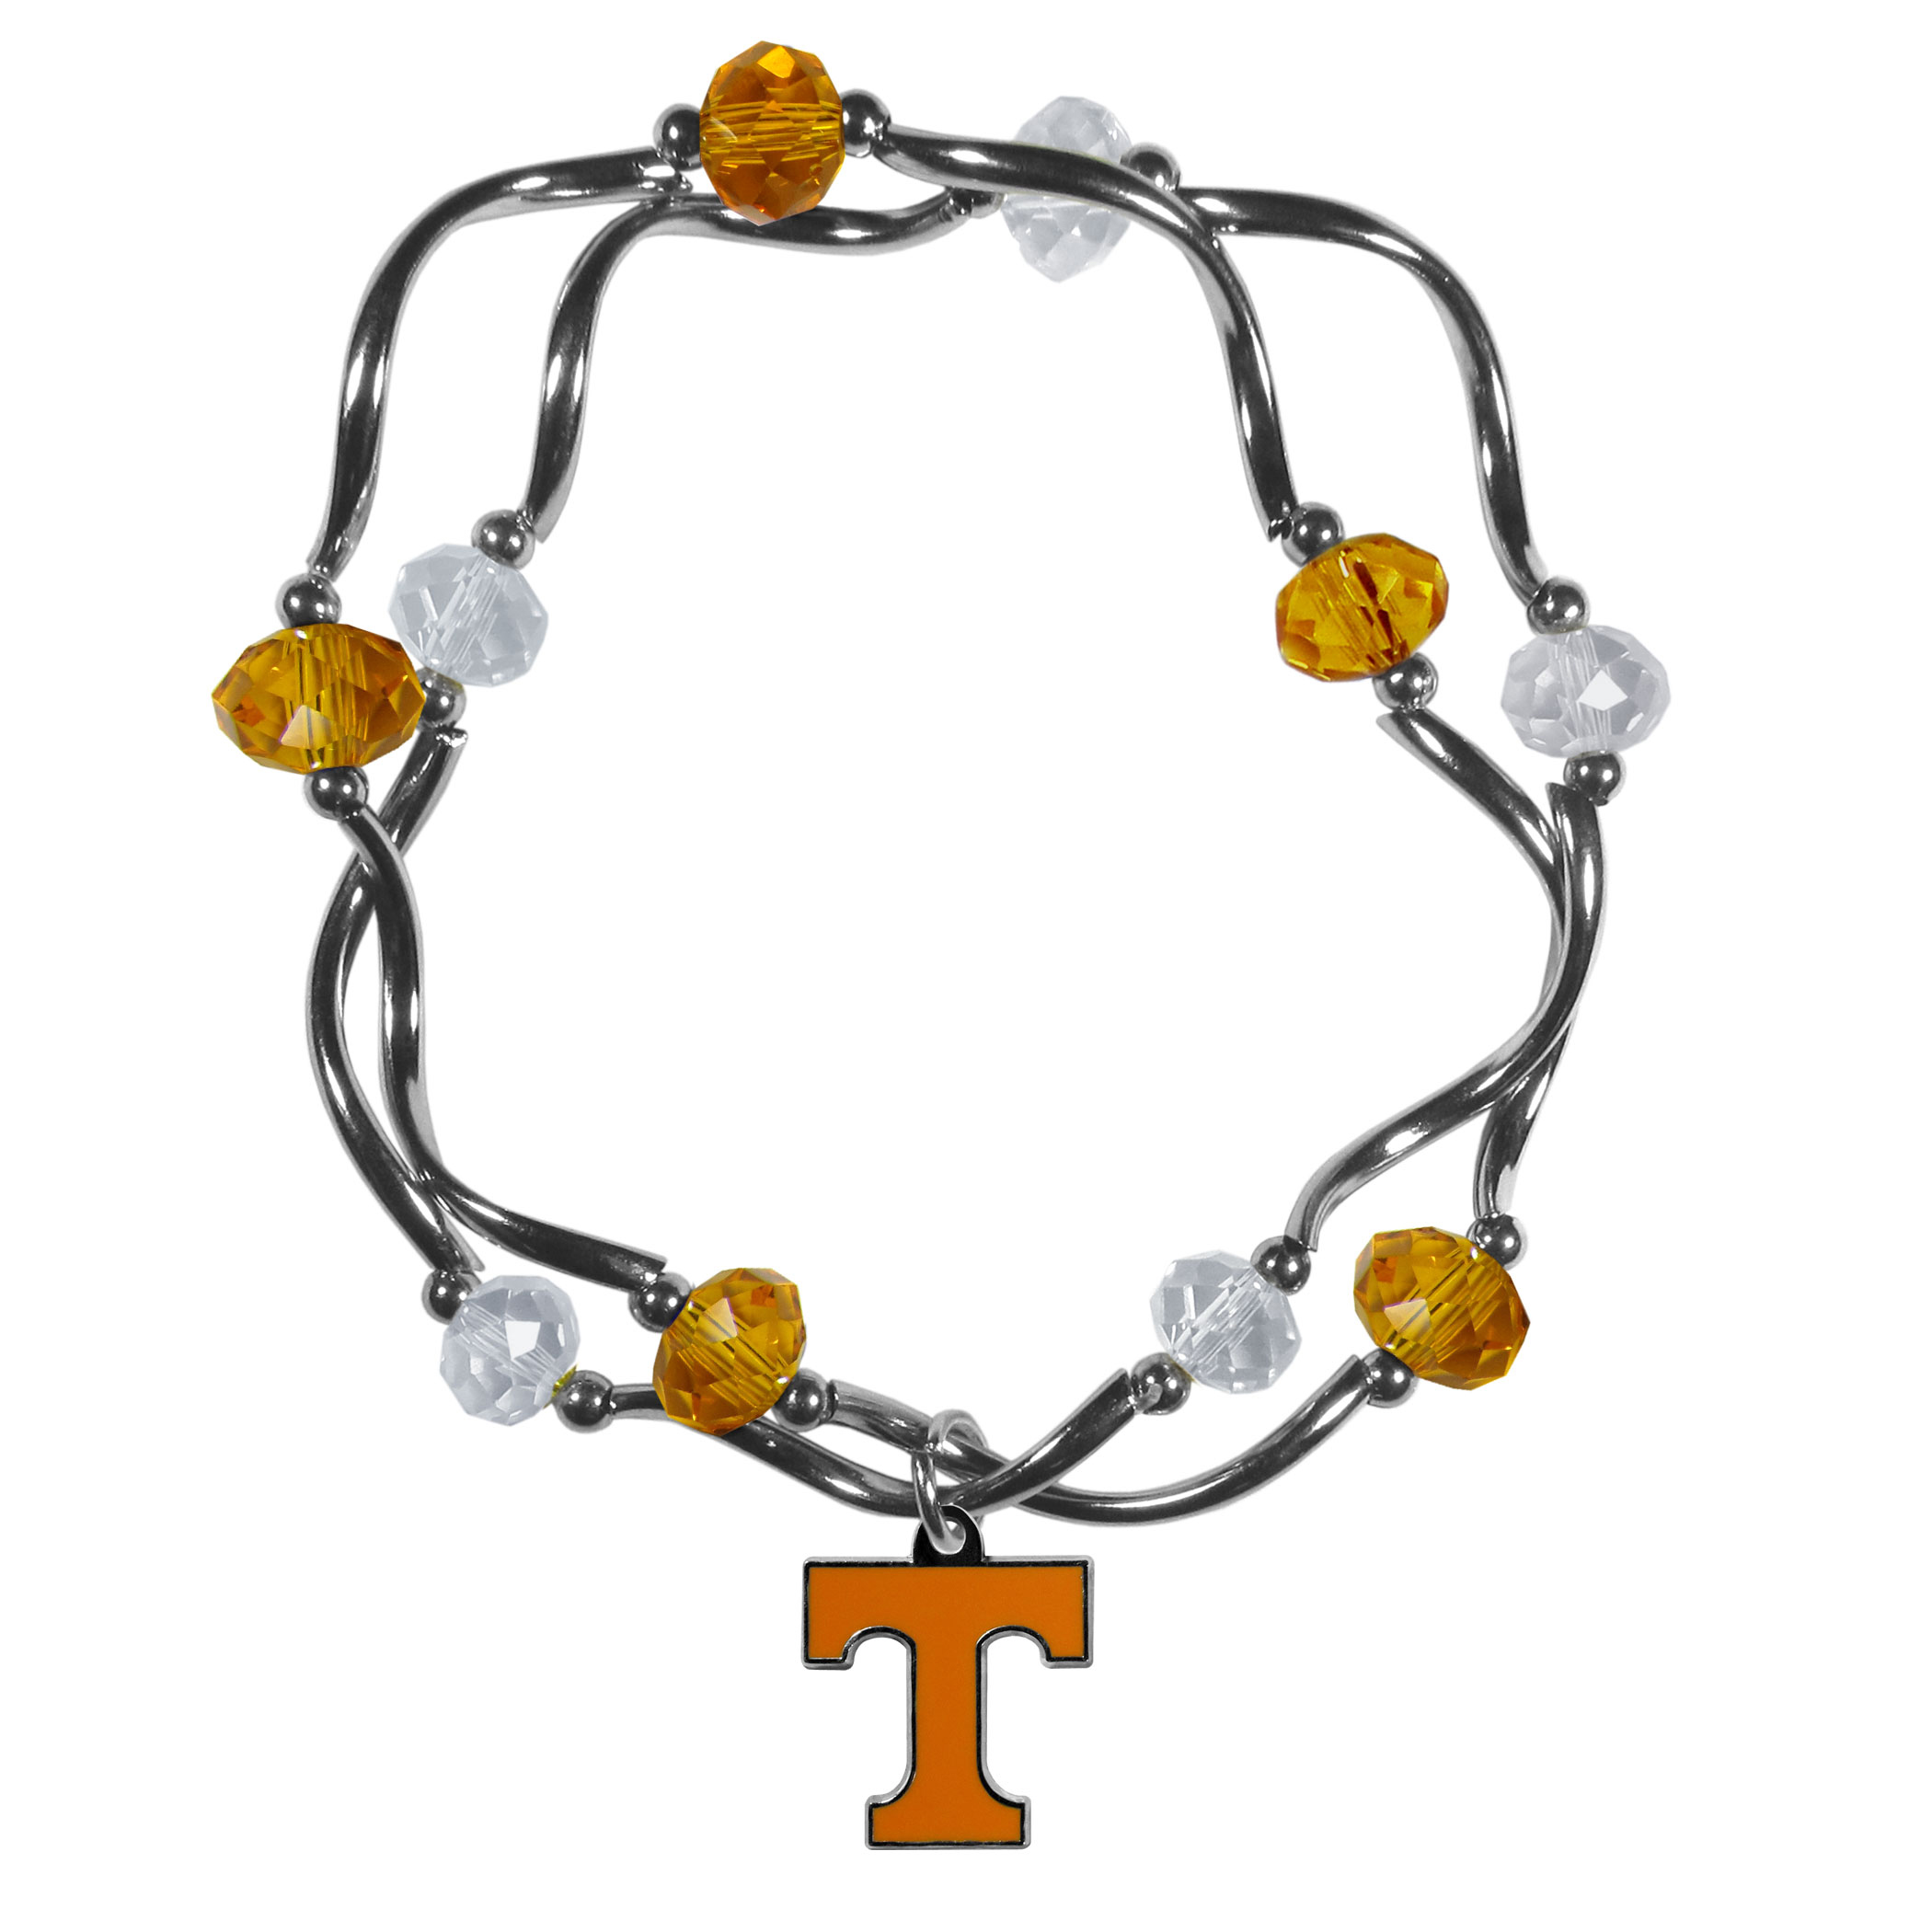 Tennessee Volunteers Crystal Bead Bracelet - This delicate bead bracelet has eye-catching team colored beads that are strung on 2 stretch cords that provide a comfortable and easy fit. The crystals are separated by beautiful helix beads in high polish chrome for a truly designer inspired look. The 2 strands of beads intertwine for a fun and stylish bracelet. This chic accessory is finished off with a Tennessee Volunteers team charm that has expertly carved detail and an enameled color finish. A contemporary look to thrill any female sports fan. Whether this a gift for yourself or someone special you cannot miss with this trend-setting fashion bracelet.